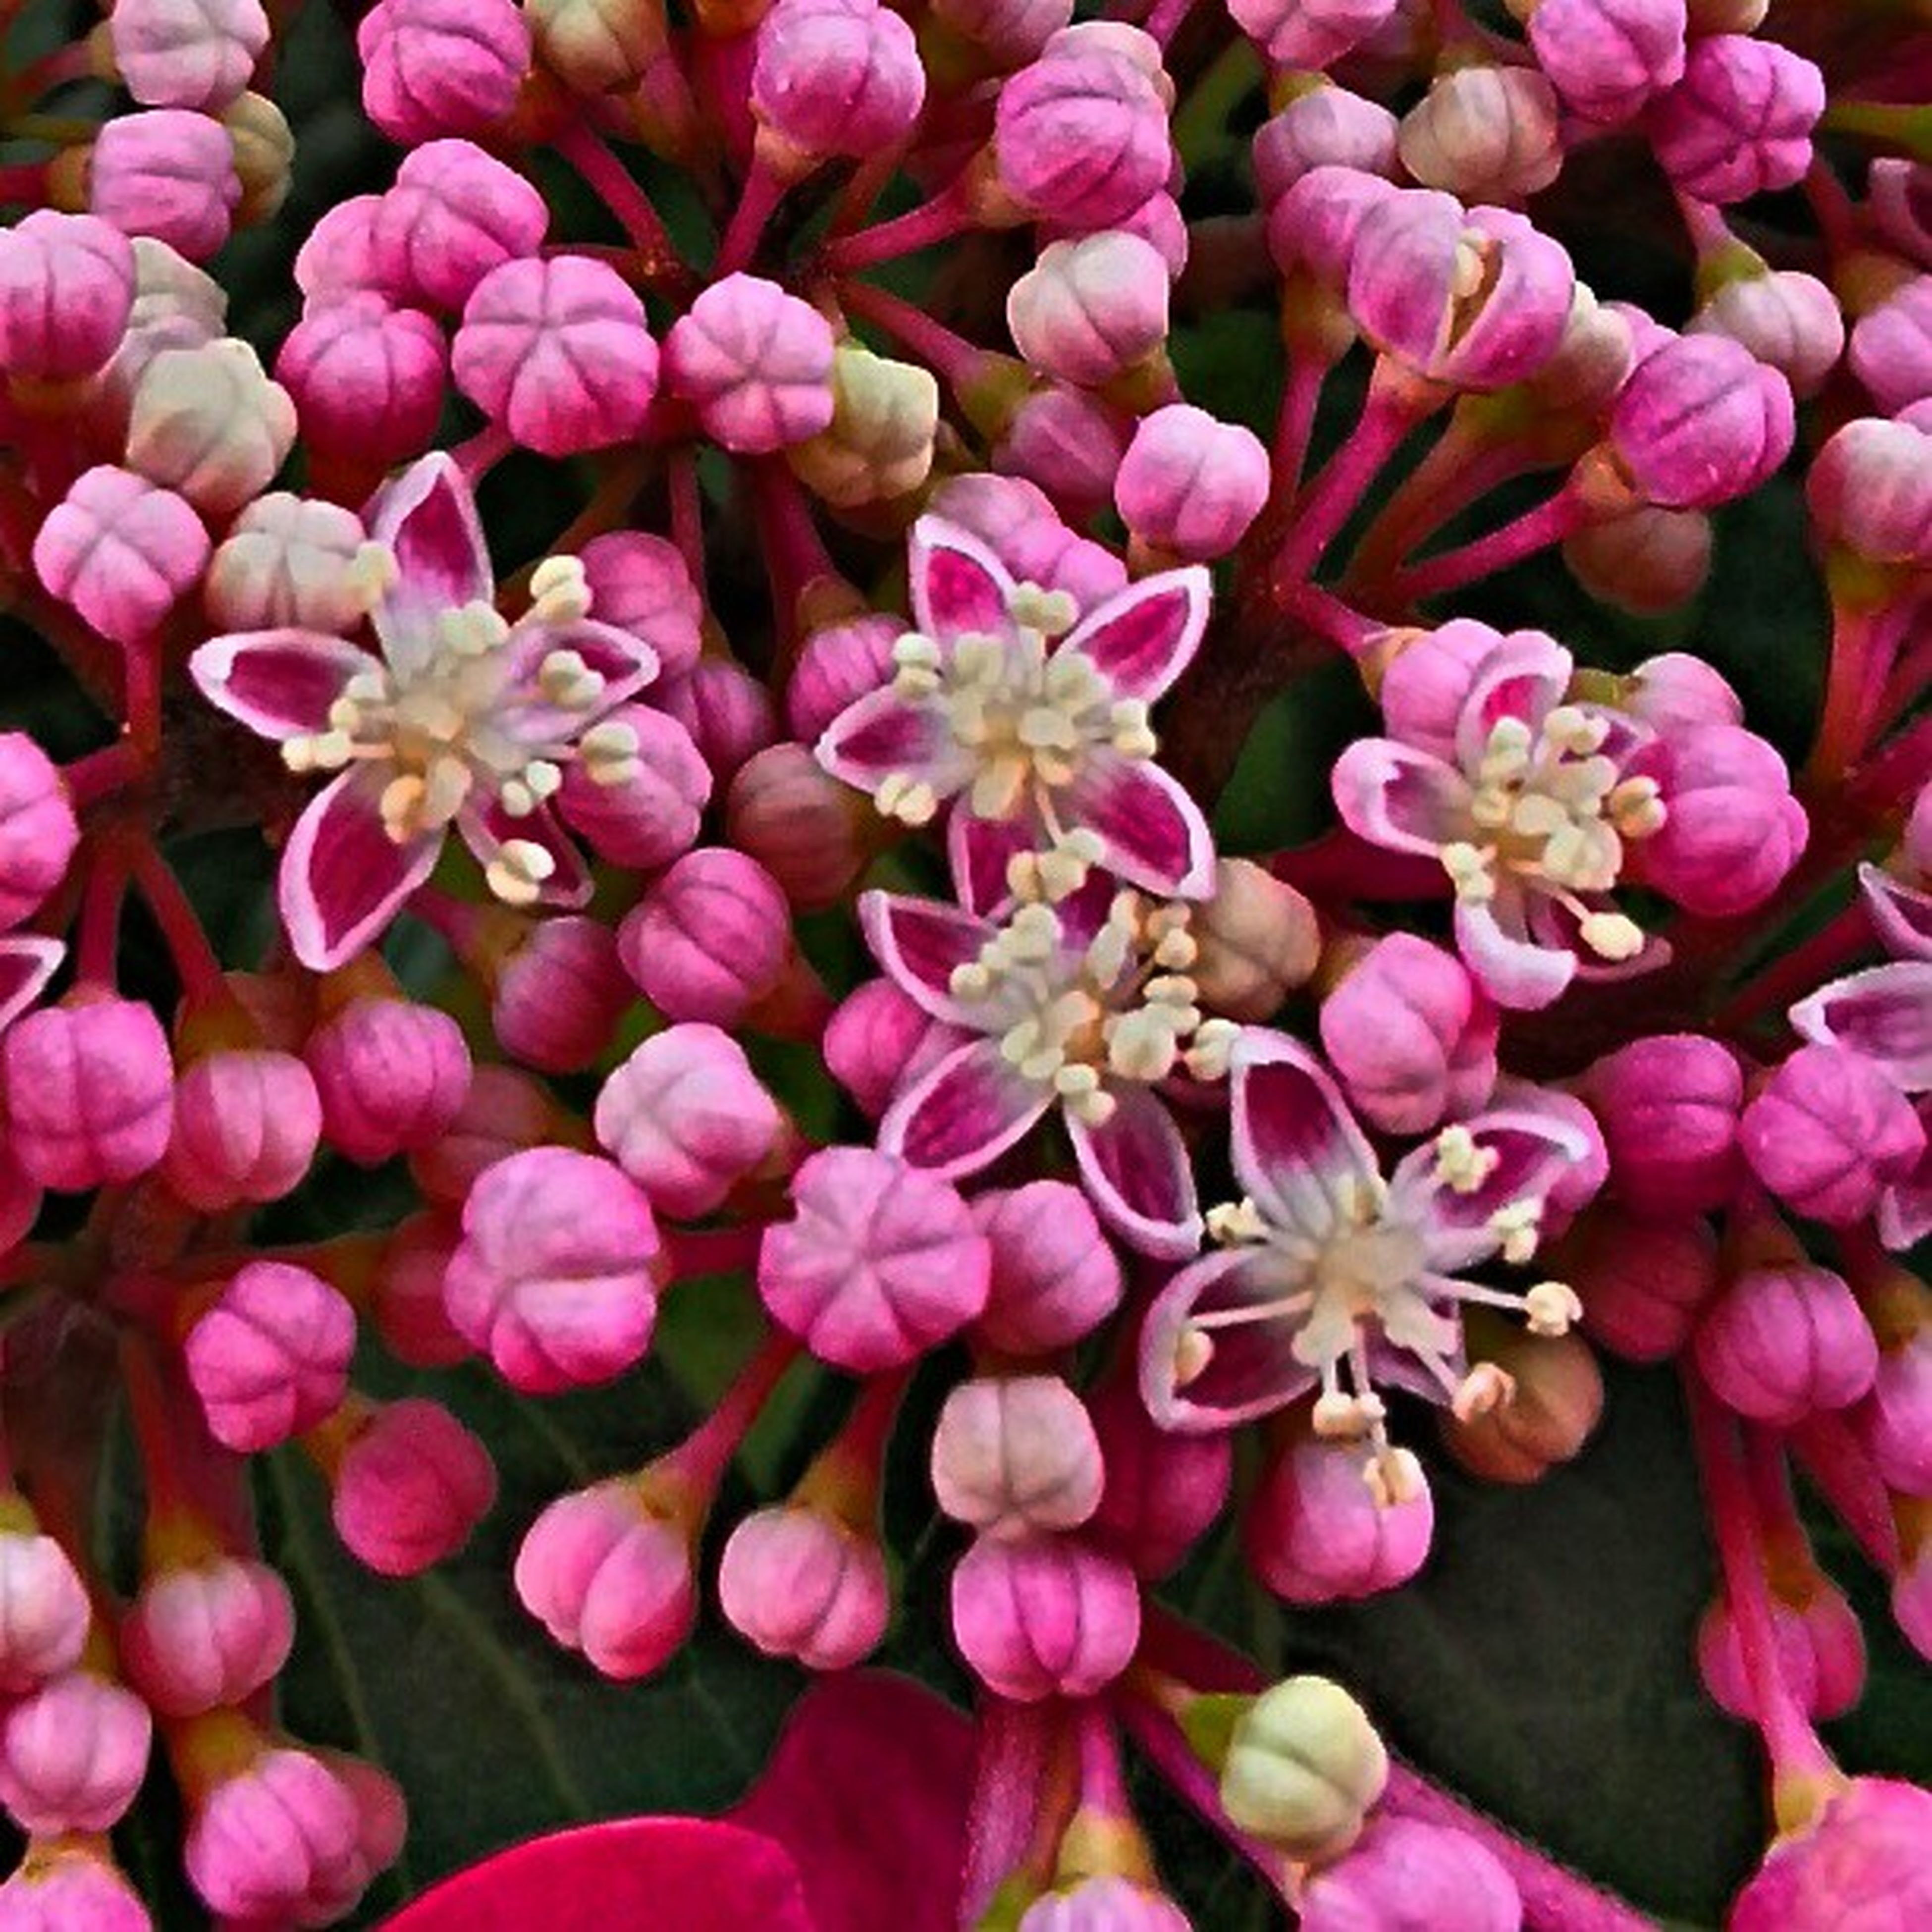 full frame, backgrounds, flower, freshness, abundance, petal, pink color, fragility, flower head, beauty in nature, close-up, large group of objects, growth, nature, pink, high angle view, multi colored, variation, no people, detail